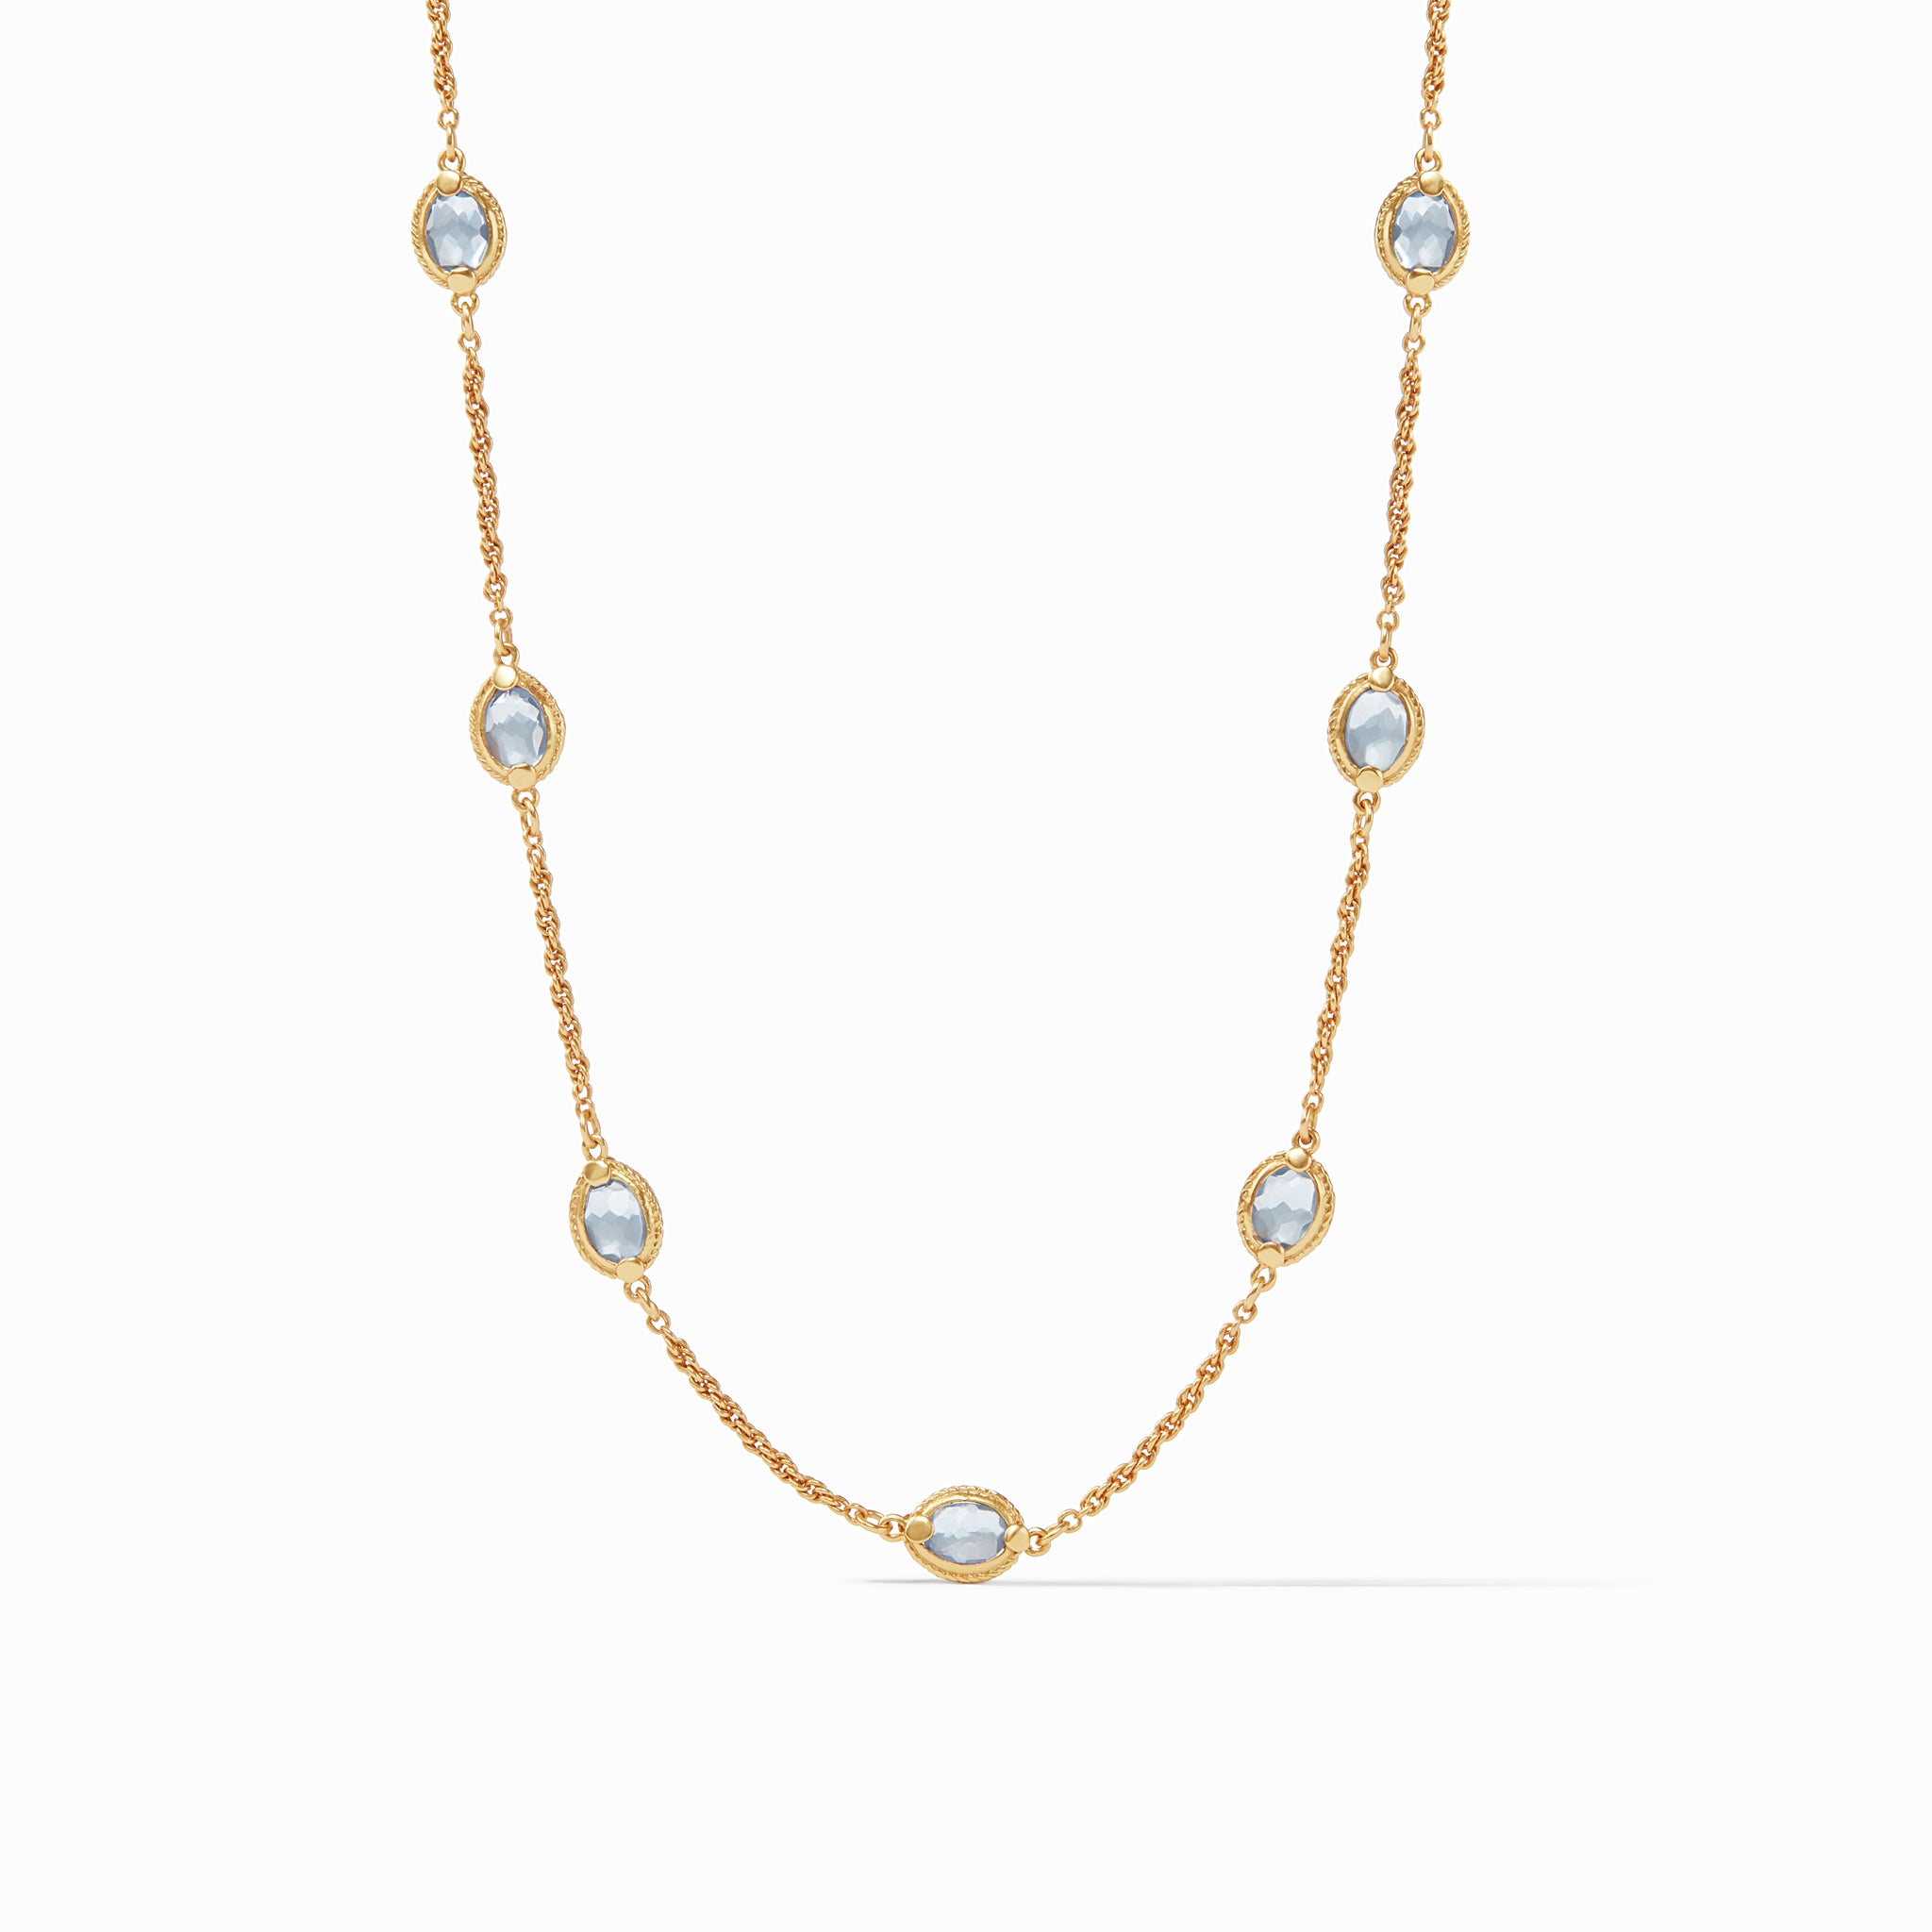 Chalcedony Blue, calypso collection, irresistibly iridescent, classics, necklace favorites